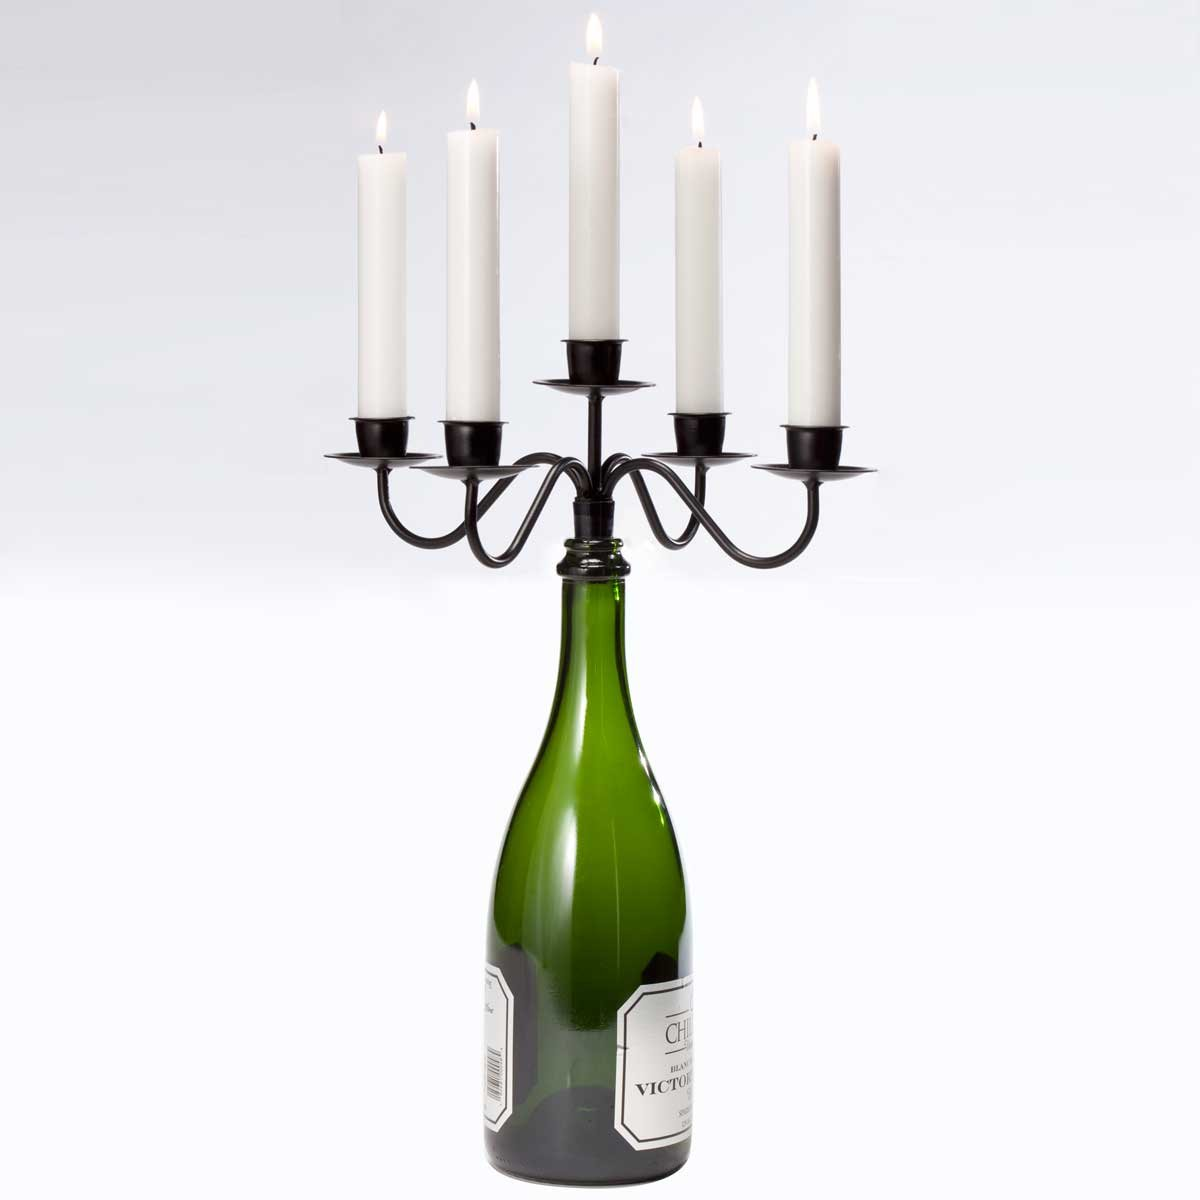 Holds 5 Tapers or Cork Candles